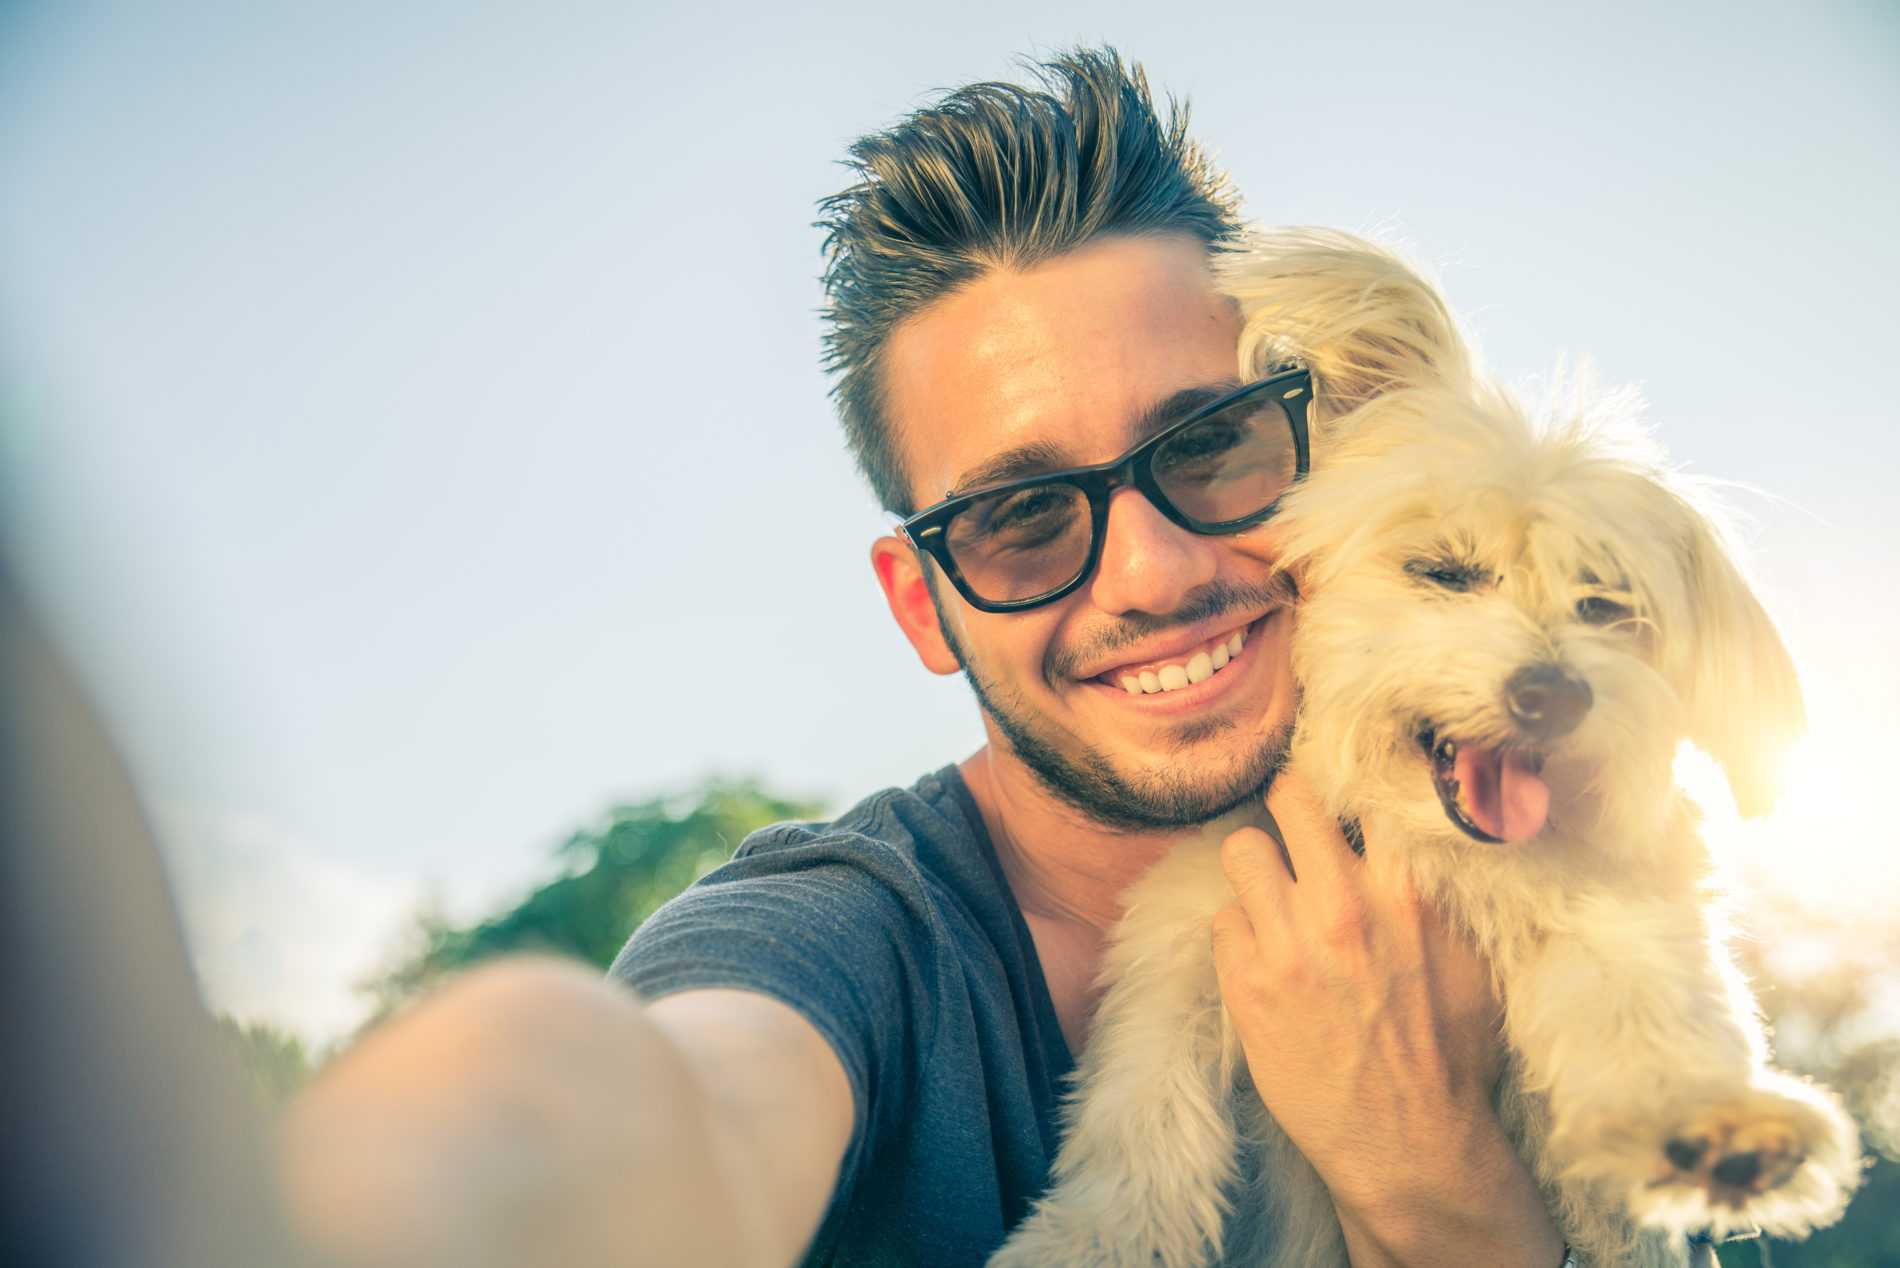 Man in black rimmed glasses holding up a small dog and taking a selfie with the sun shining behind them.